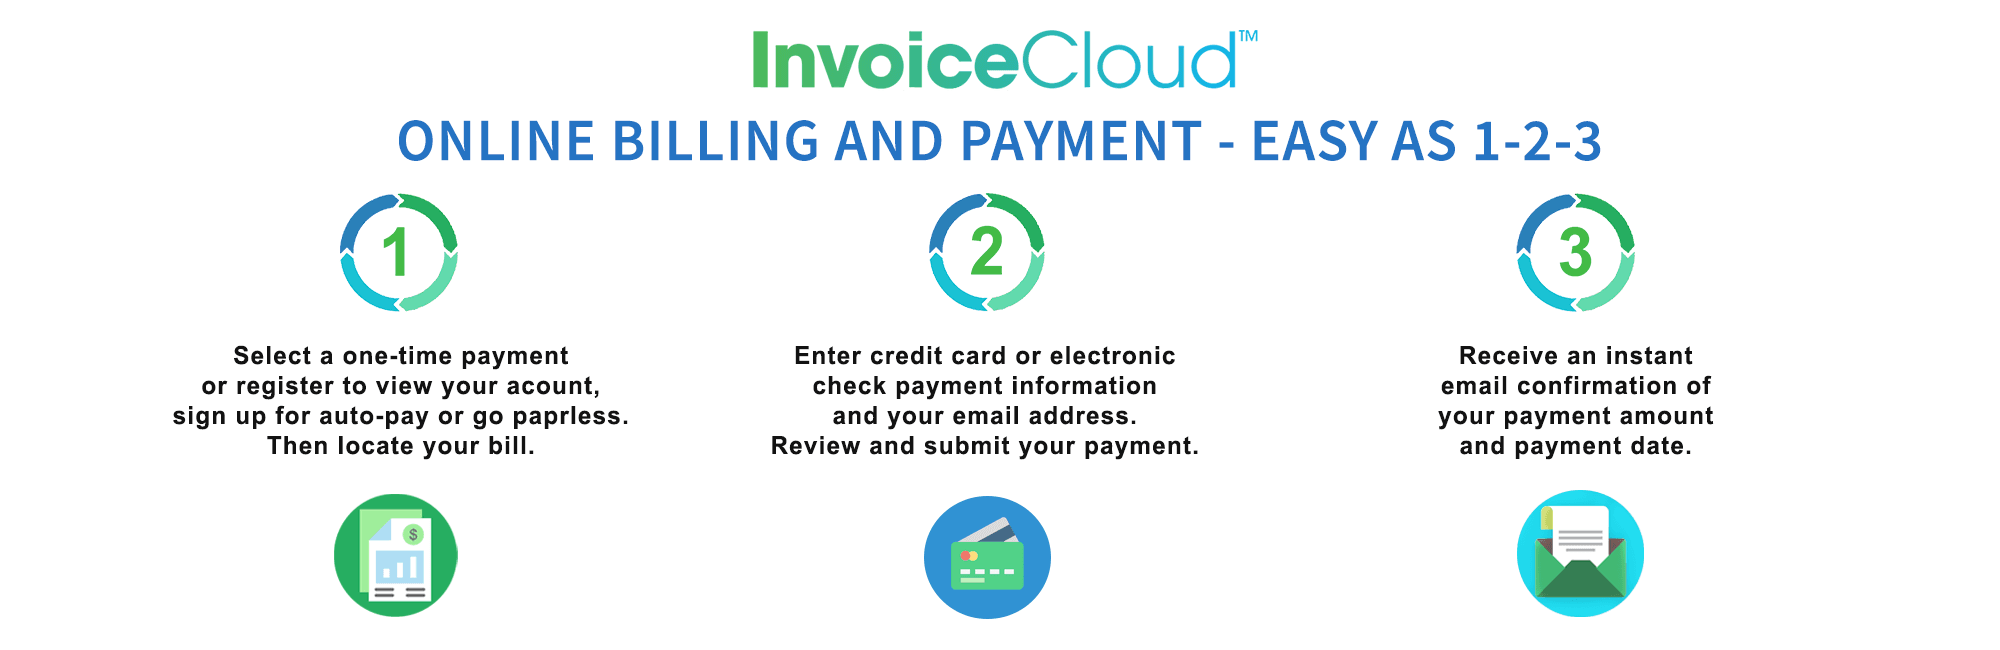 Invoice Cloud_Easy as 1-2-3 Website Graphic